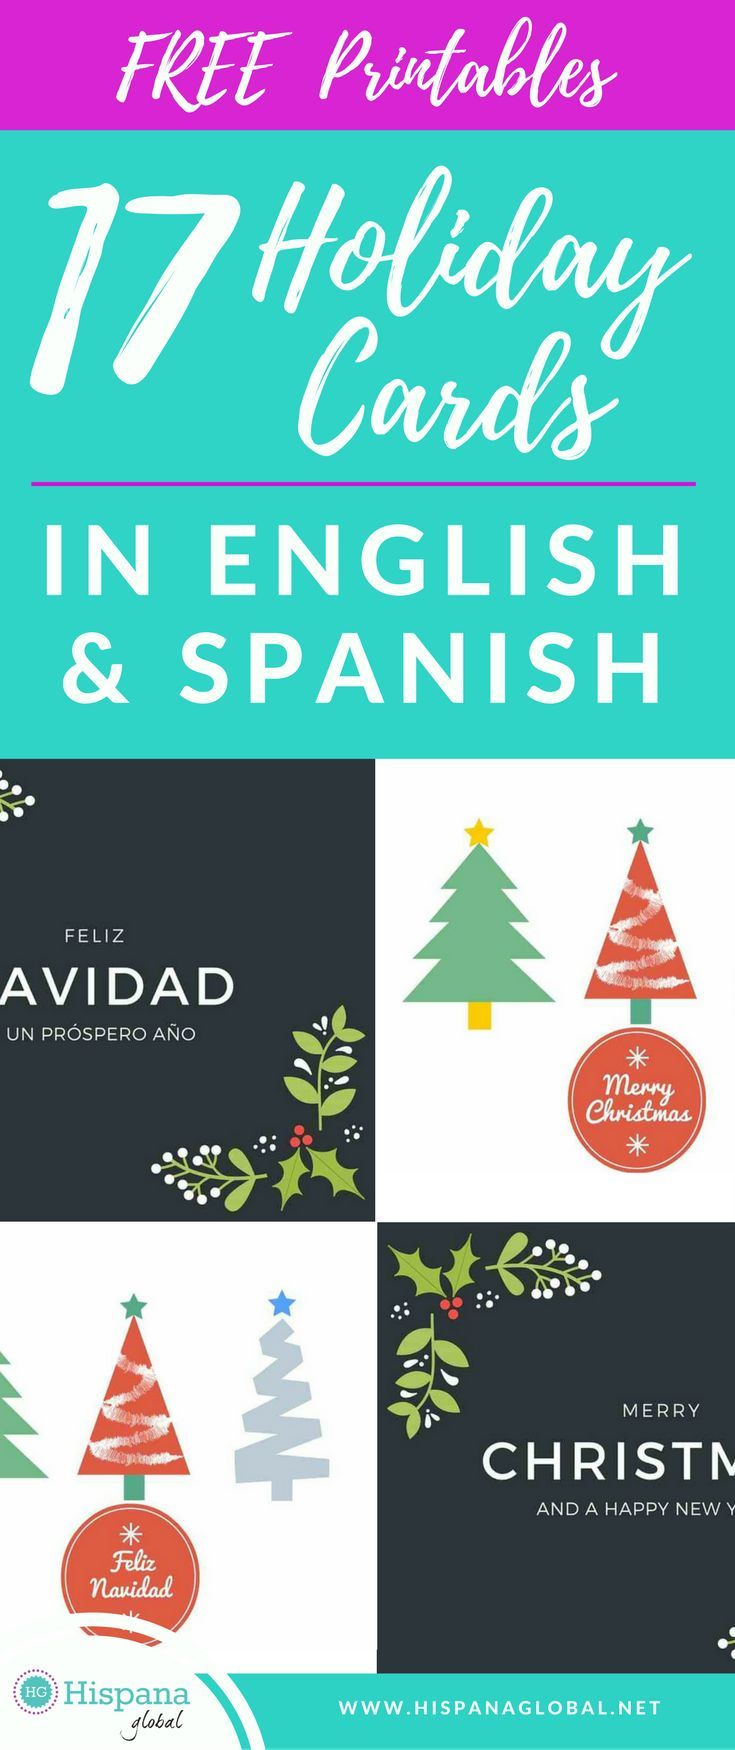 20 free printable holiday cards in english and spanish